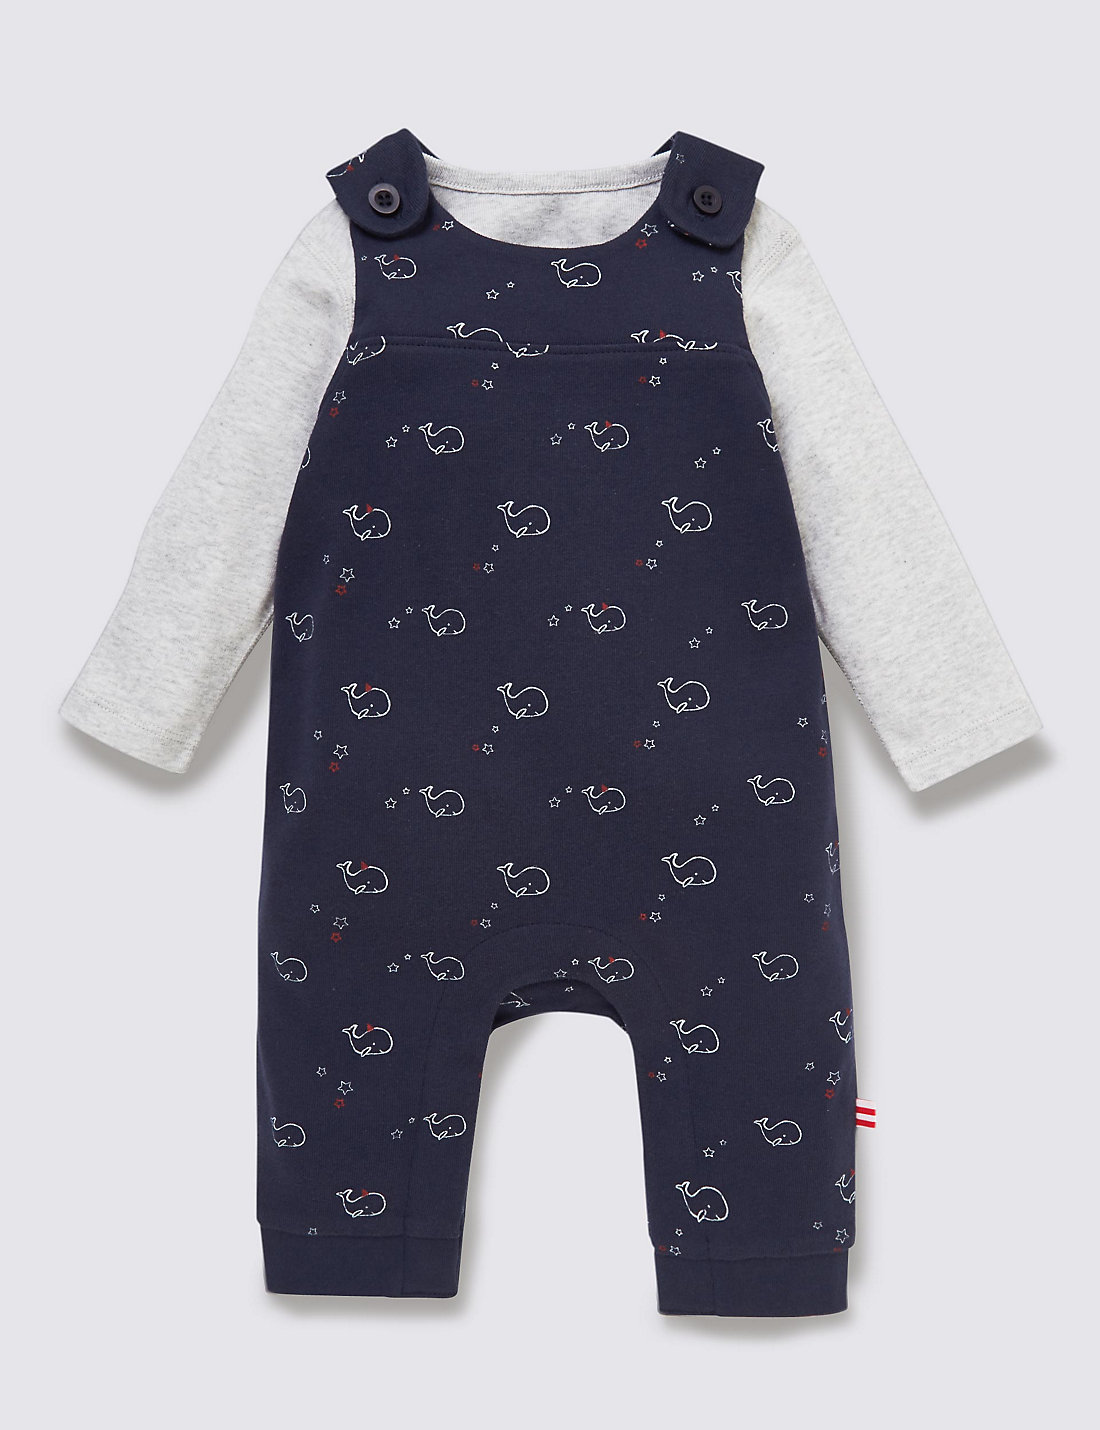 2 Piece Pure Cotton Bodysuit & Whale Print Dungaree Outfit